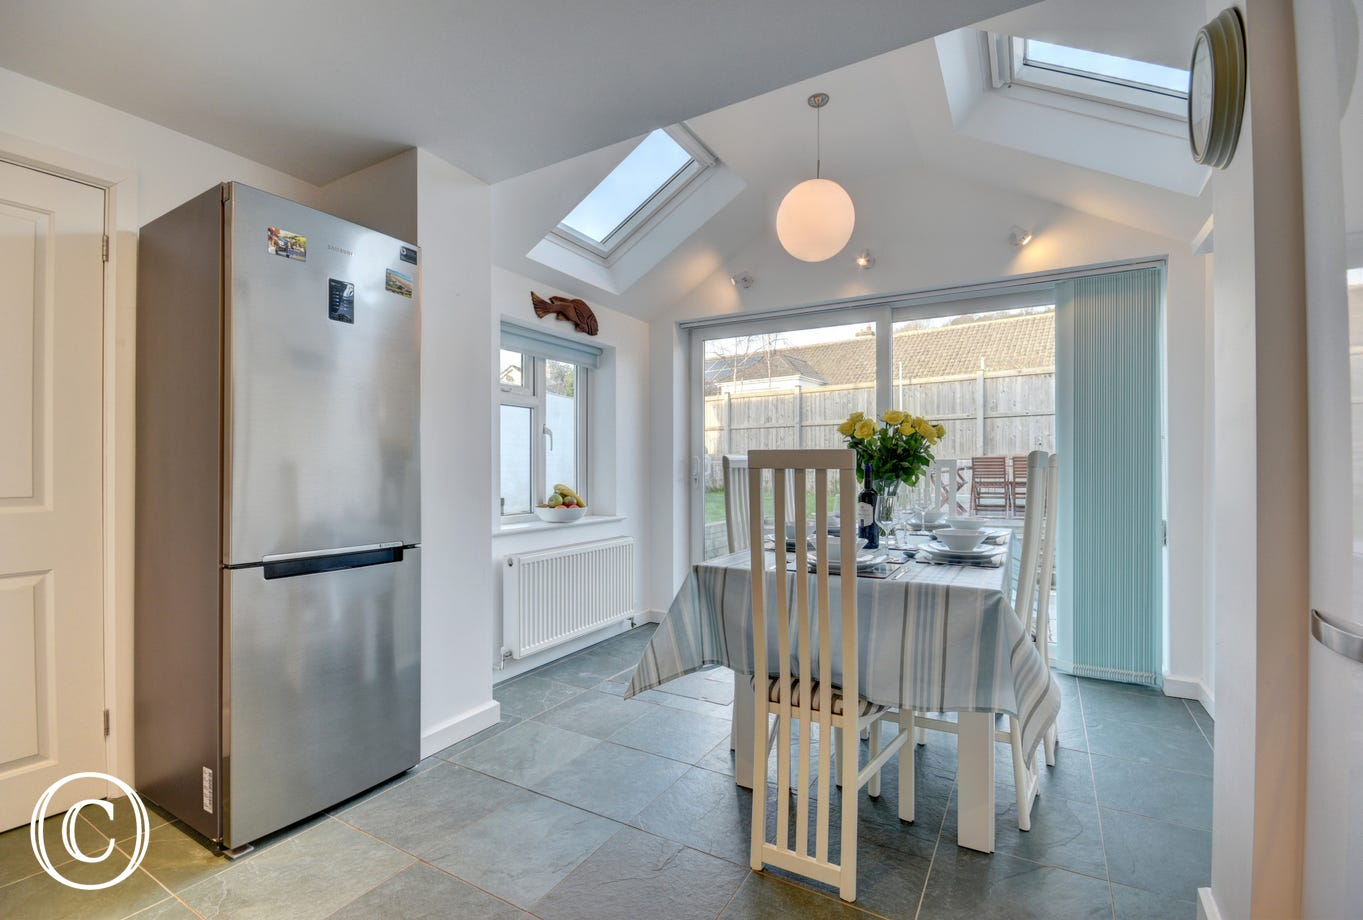 The spacious kitchen with a light and bright dining area extending off towards the garden